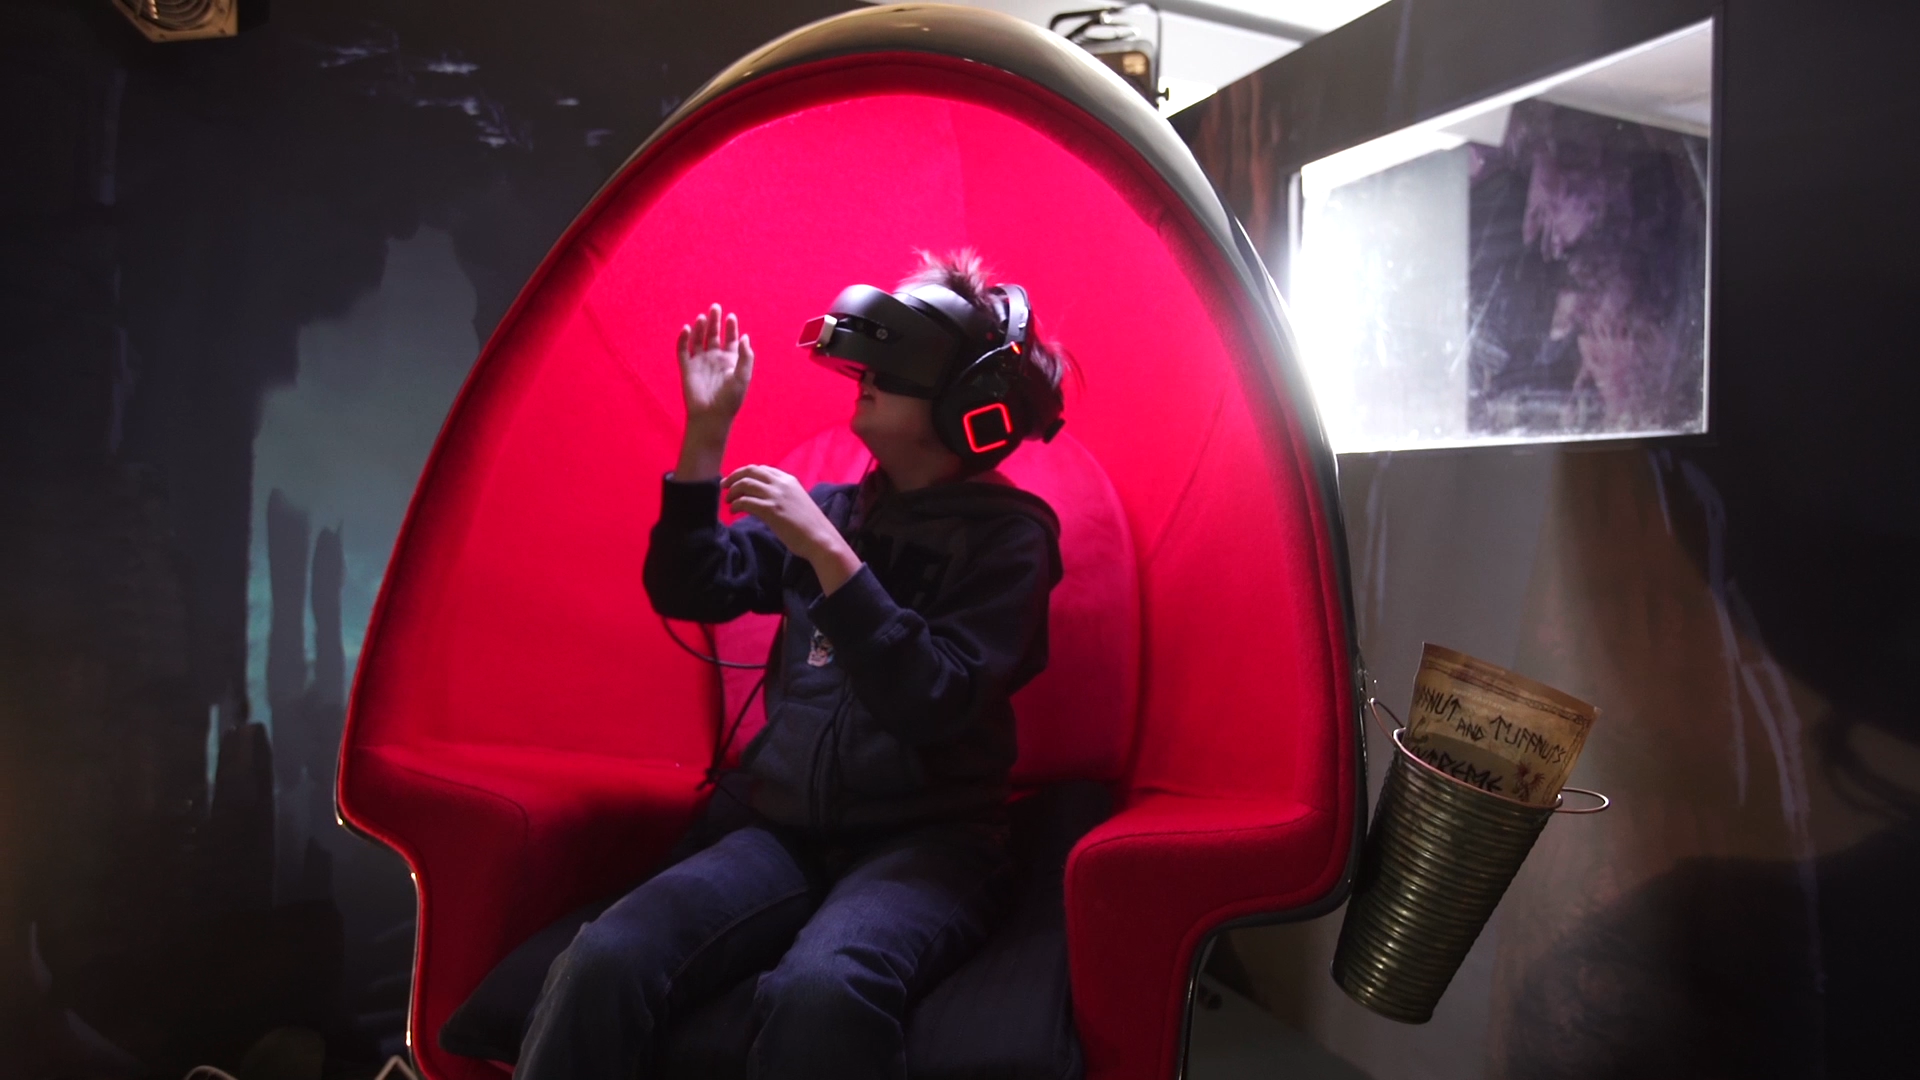 Walmart And Dreamworks Animation Invite Fans To Step Into The Hidden World Of How To Train Your Dragon Through New Virtual Reality Experience